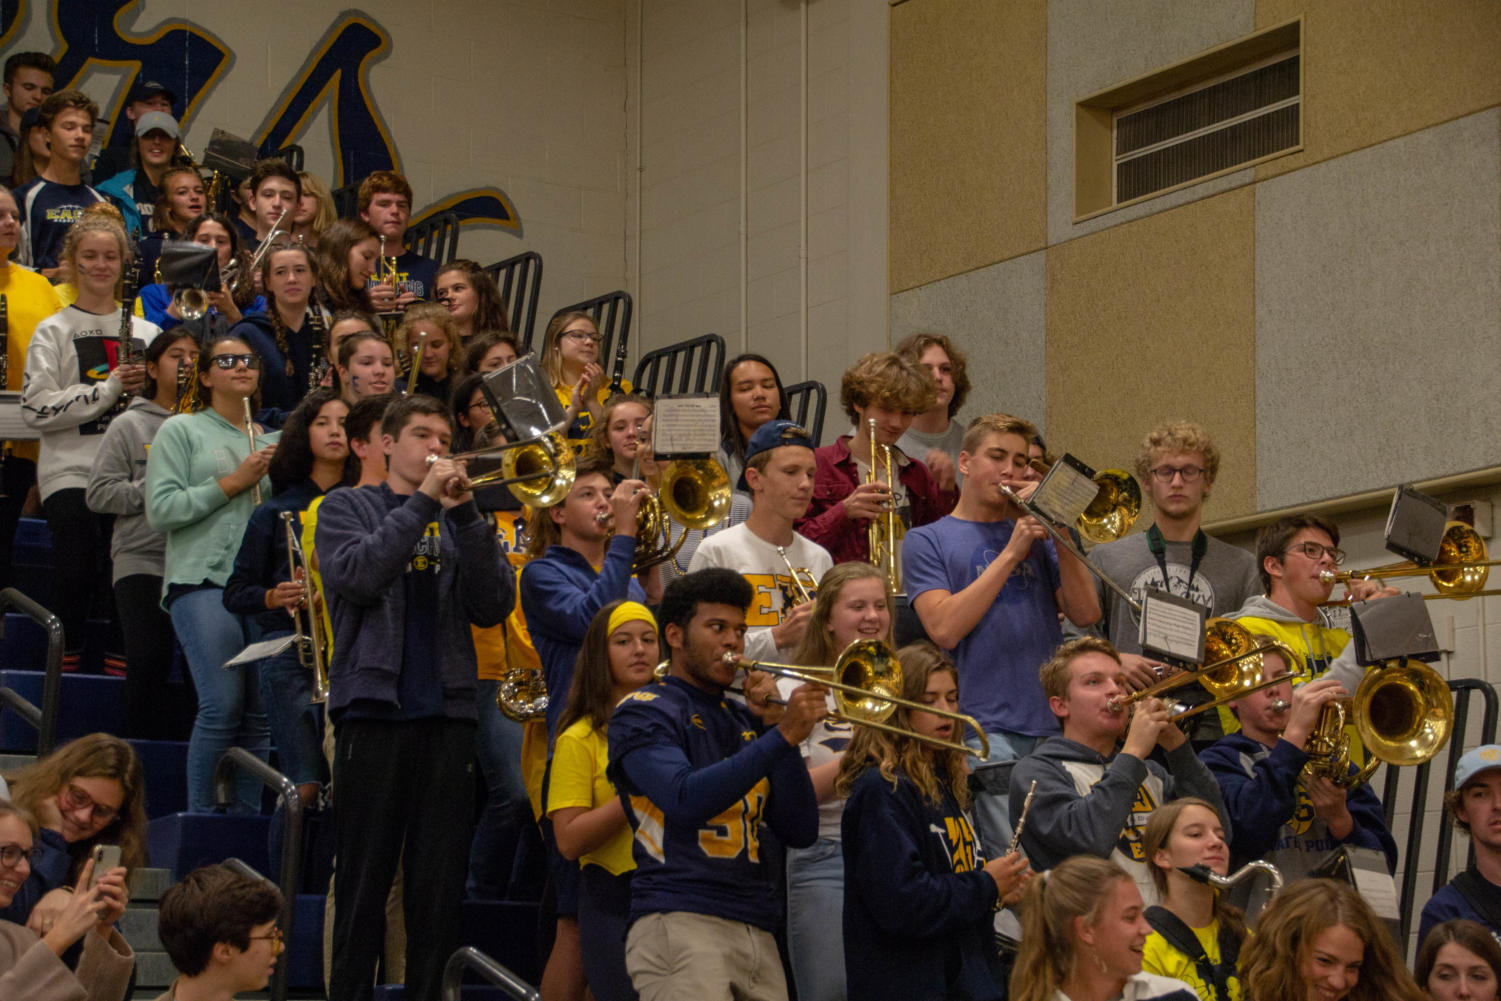 The+EGRHS+band+plays+at+the+homecoming+assembly.